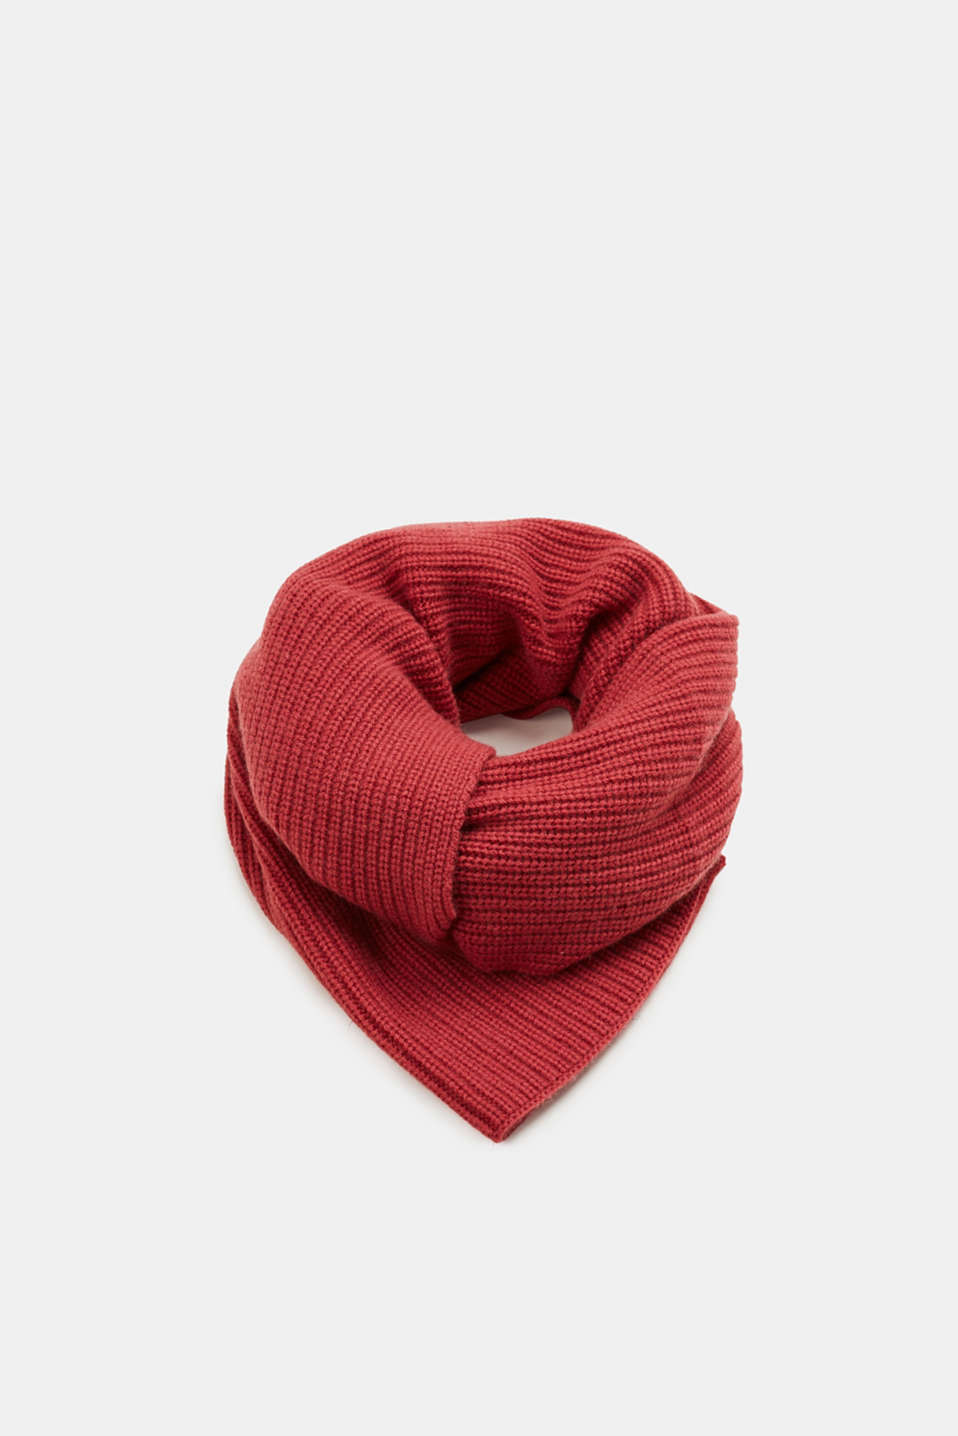 Esprit - A cashmere/wool blend: Scarf with ribbed pattern